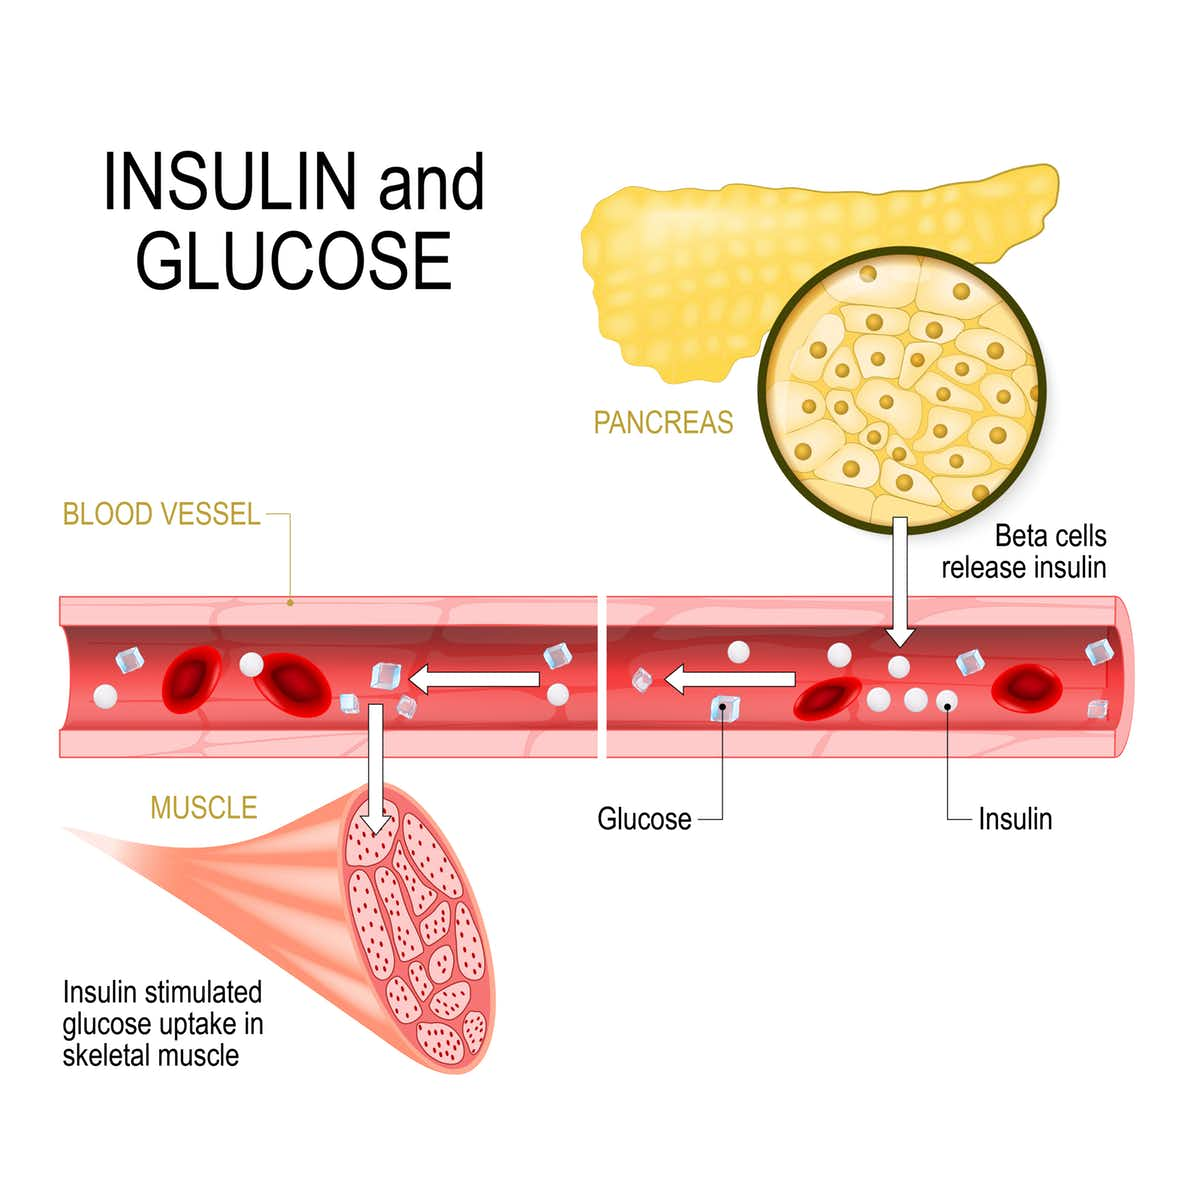 Beta-cells in the pancreas release insulin in the blood vessel. Insulin stimulates the absorption of glucose in skeletal muscle. (Designua/Shutterstock)